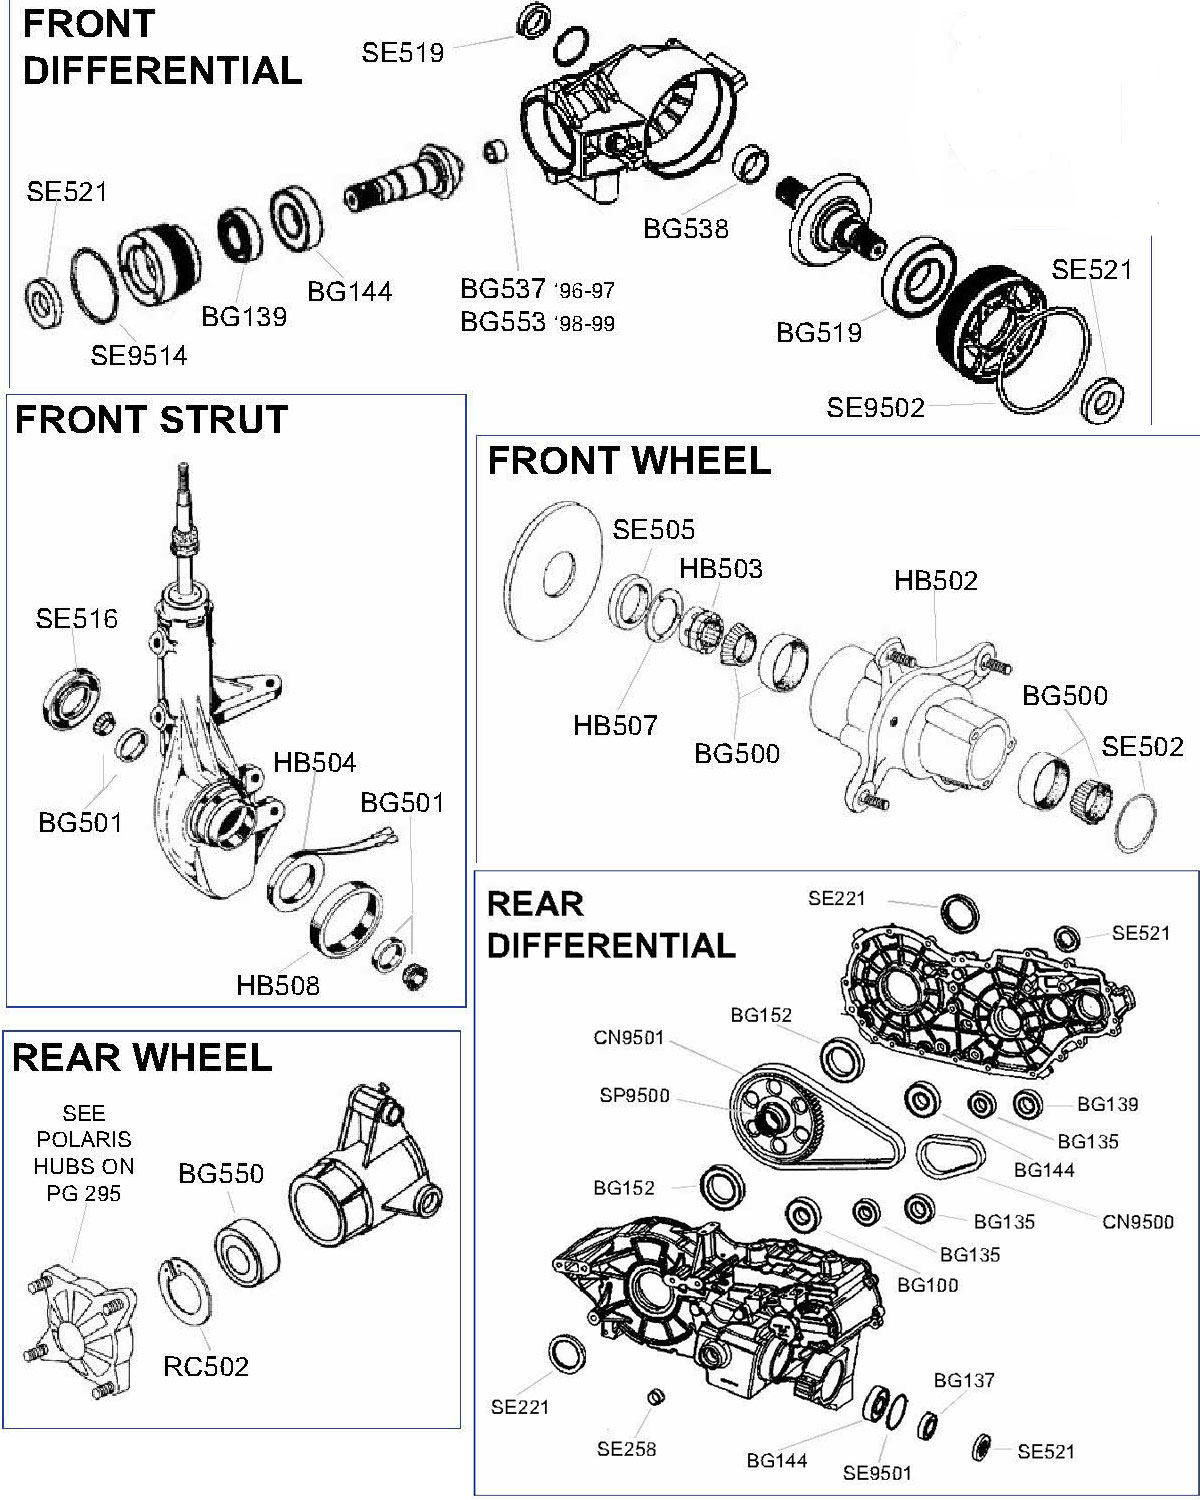 Polaris Sportsman 500 Wiring Diagram For Ranger 2003 Manual Of 400 Transmission Get Pdf Ho